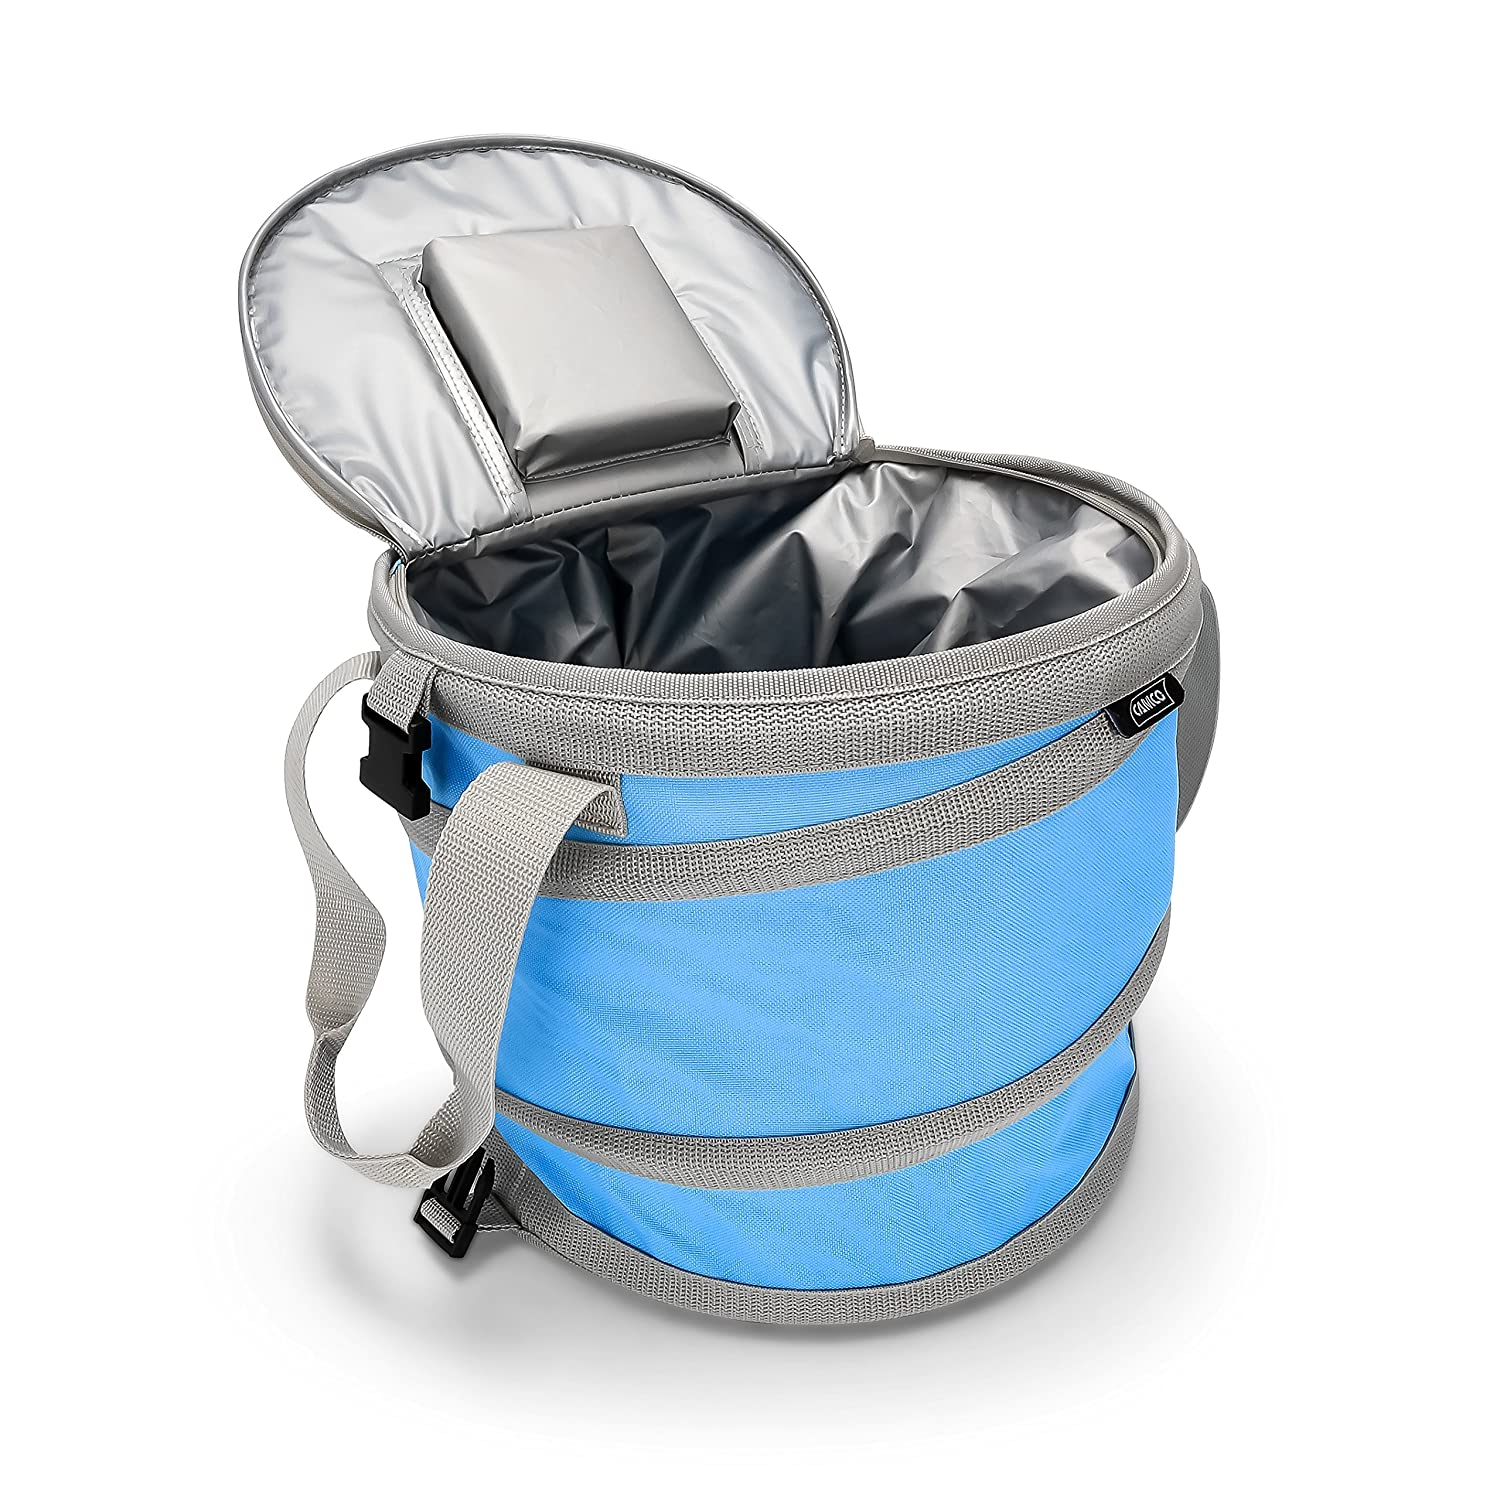 Camco Pop-Up Cooler – Lightweight, Waterproof and Insulated Pops Open for Use and Collapses Flat for Storage Perfect for the Beach, Pool, Camping, Tailgating and Travel – Blue 51995